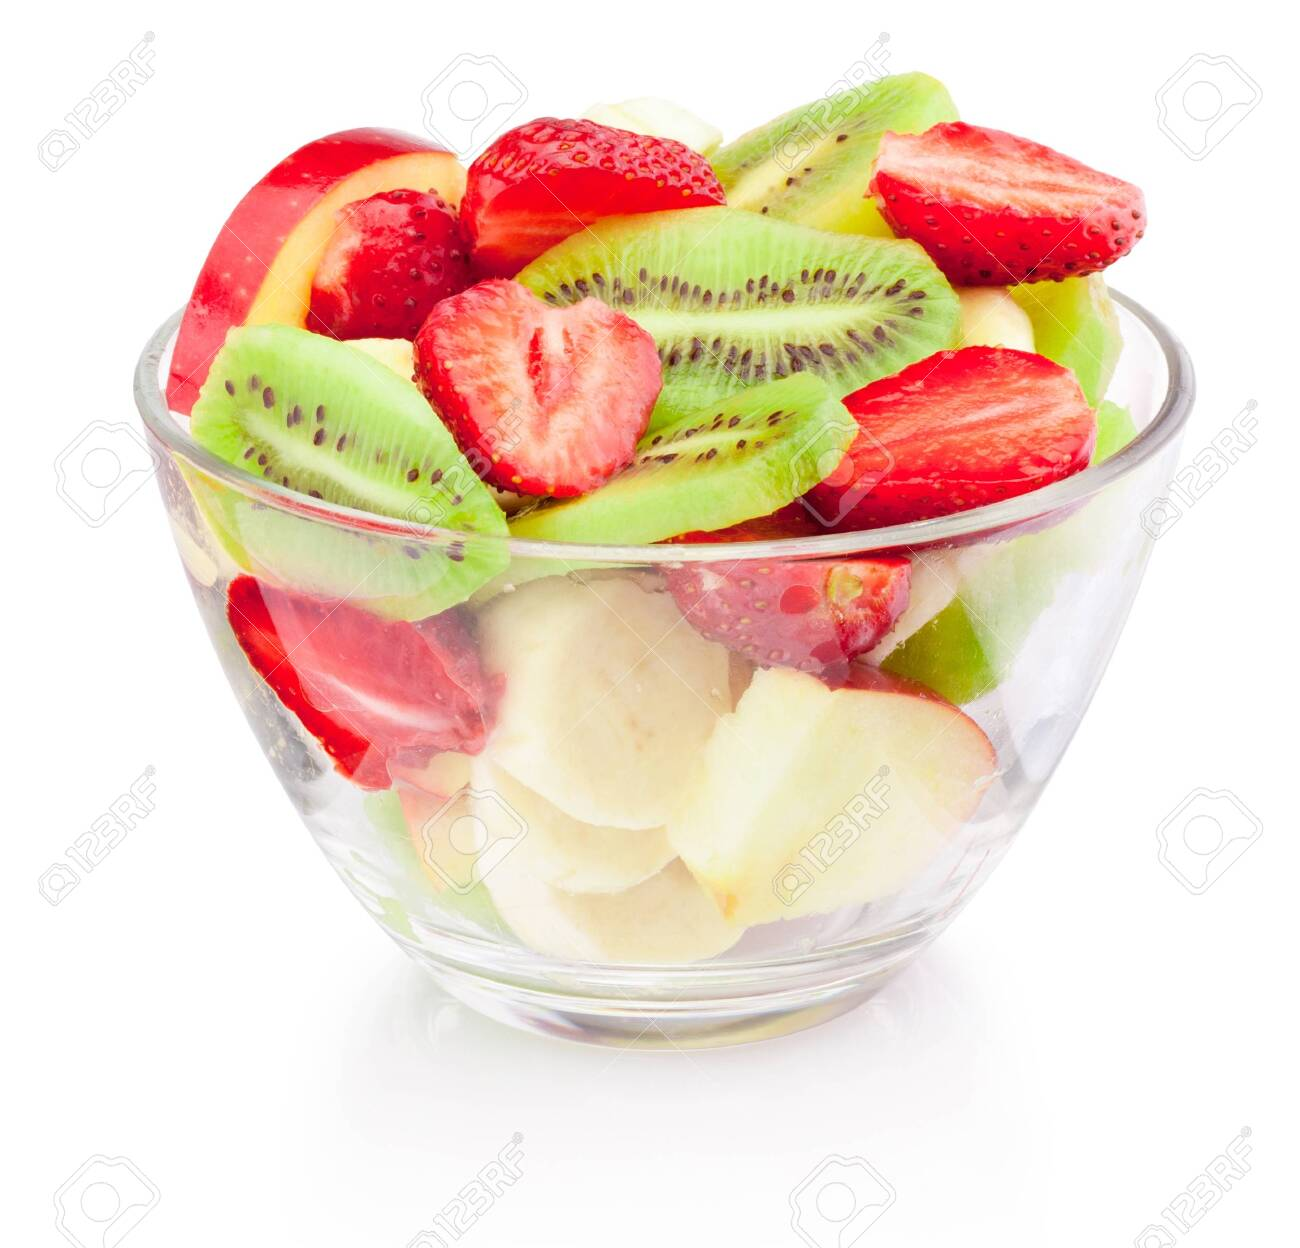 Fresh fruit salad in glass bowl isolated on a white background - 125406958